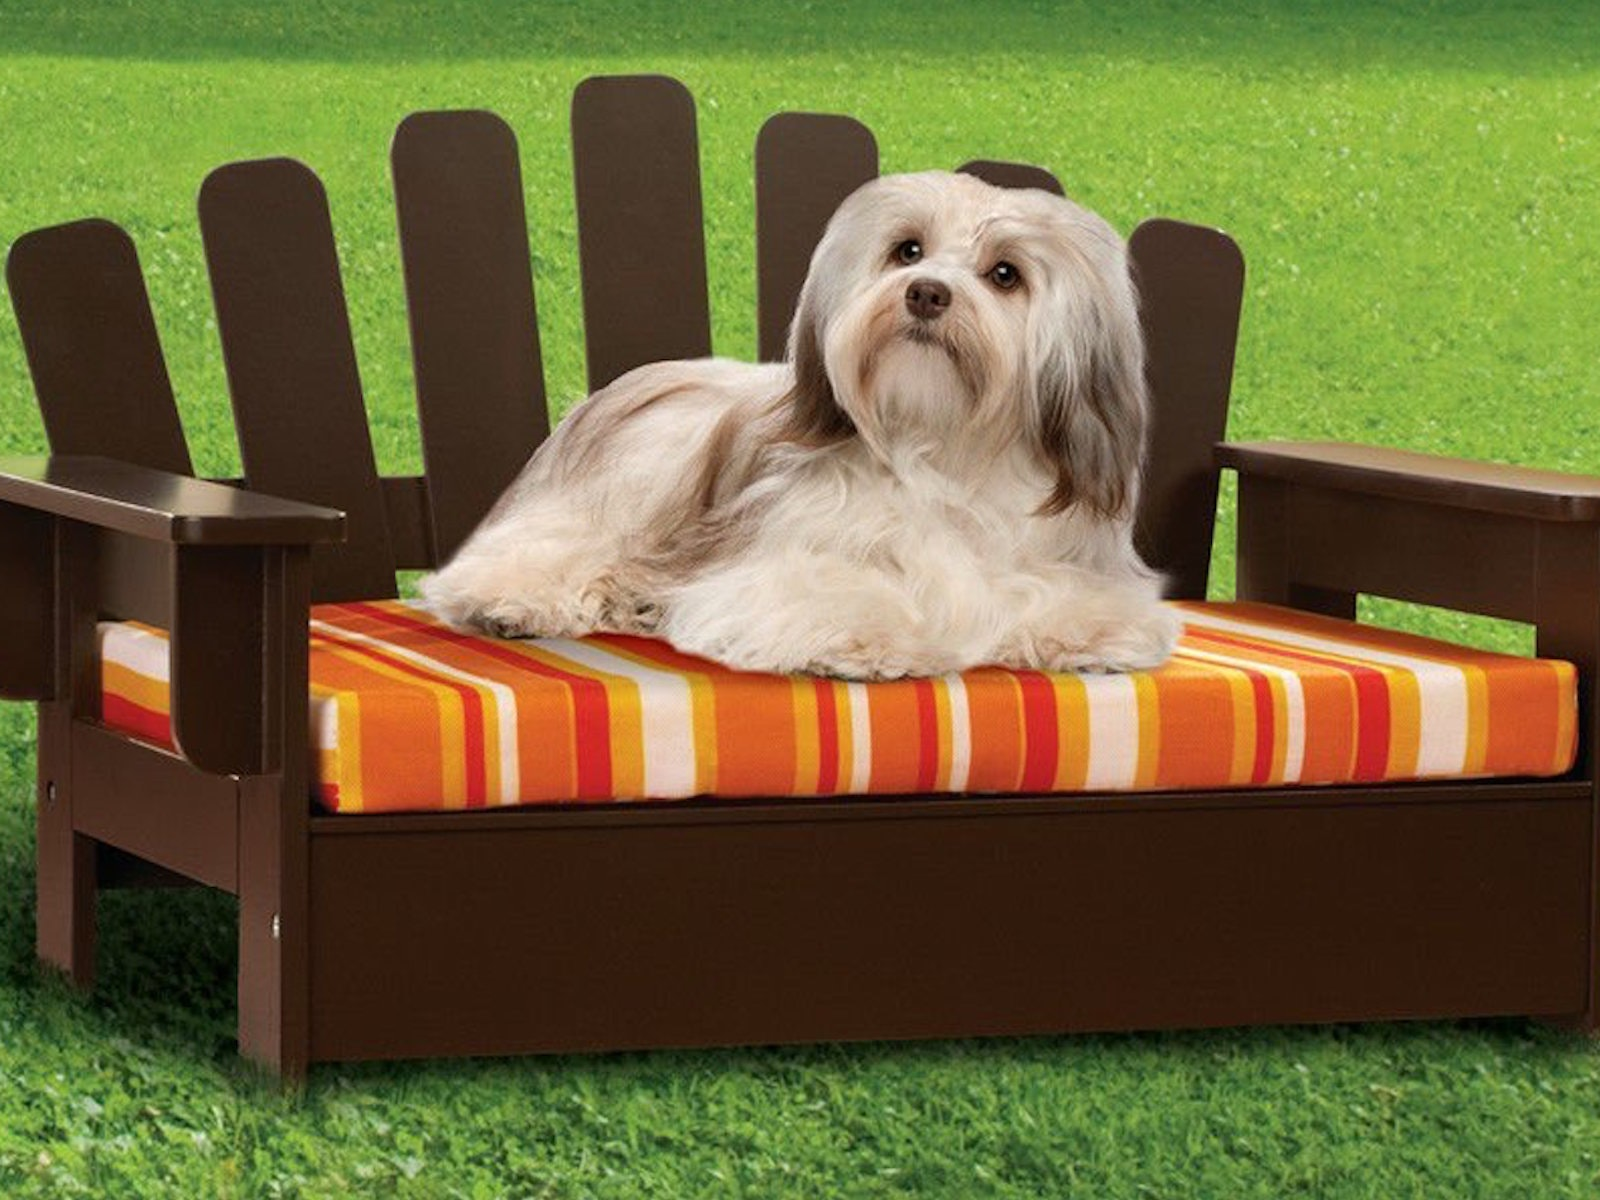 This luxe lawn chair for dogs